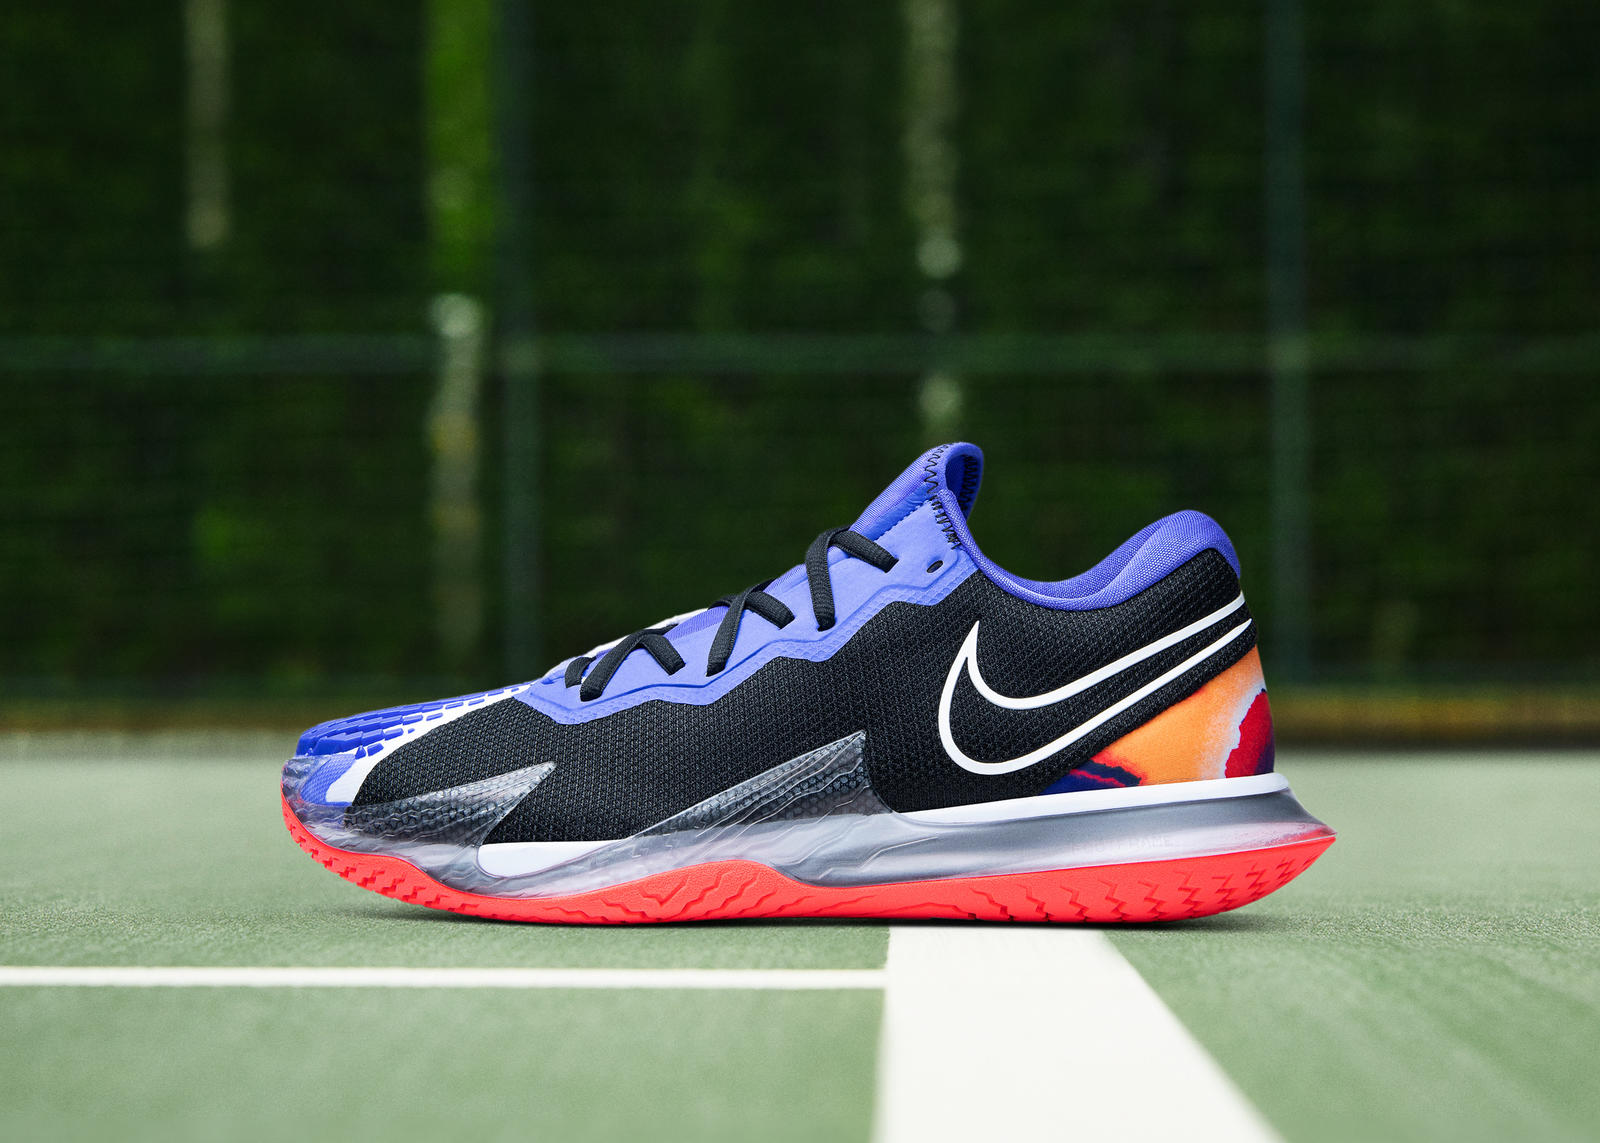 NikeCourt Zoom Vapor Cage 4 Official Images and Release Date 8